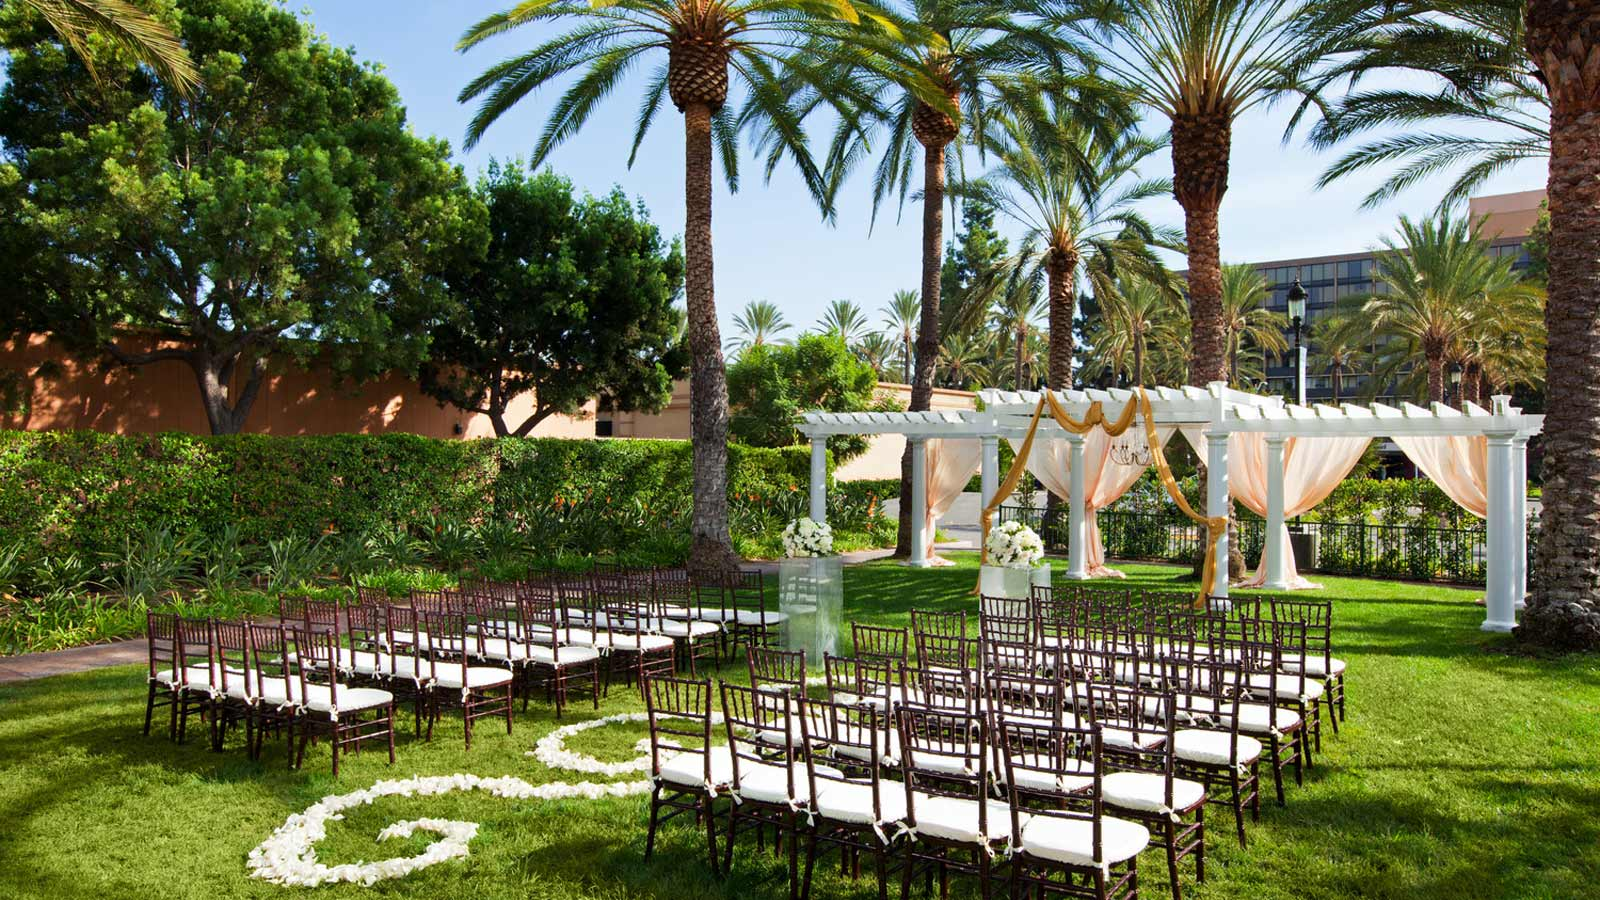 Advantages Of The Outdoor Wedding Reception: Sheraton Park Hotel At The